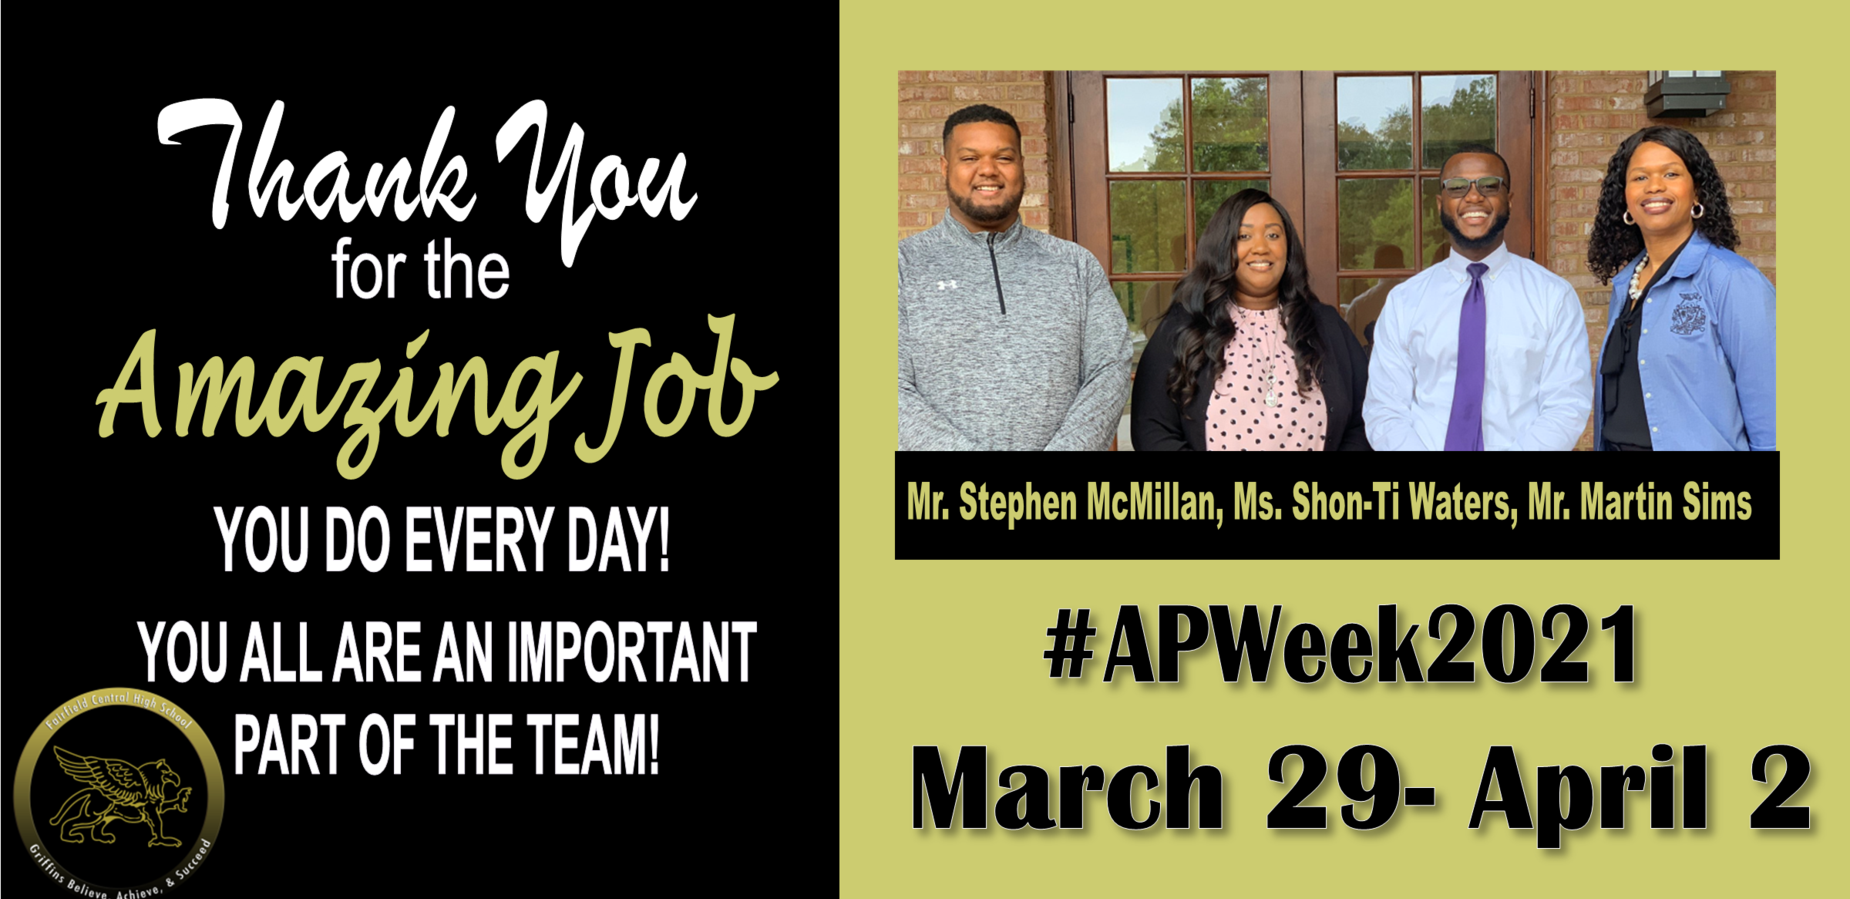 Thank you for the Amazing job you do every day. You all are an important part of the team! #APWeek2021 March 29-April 2